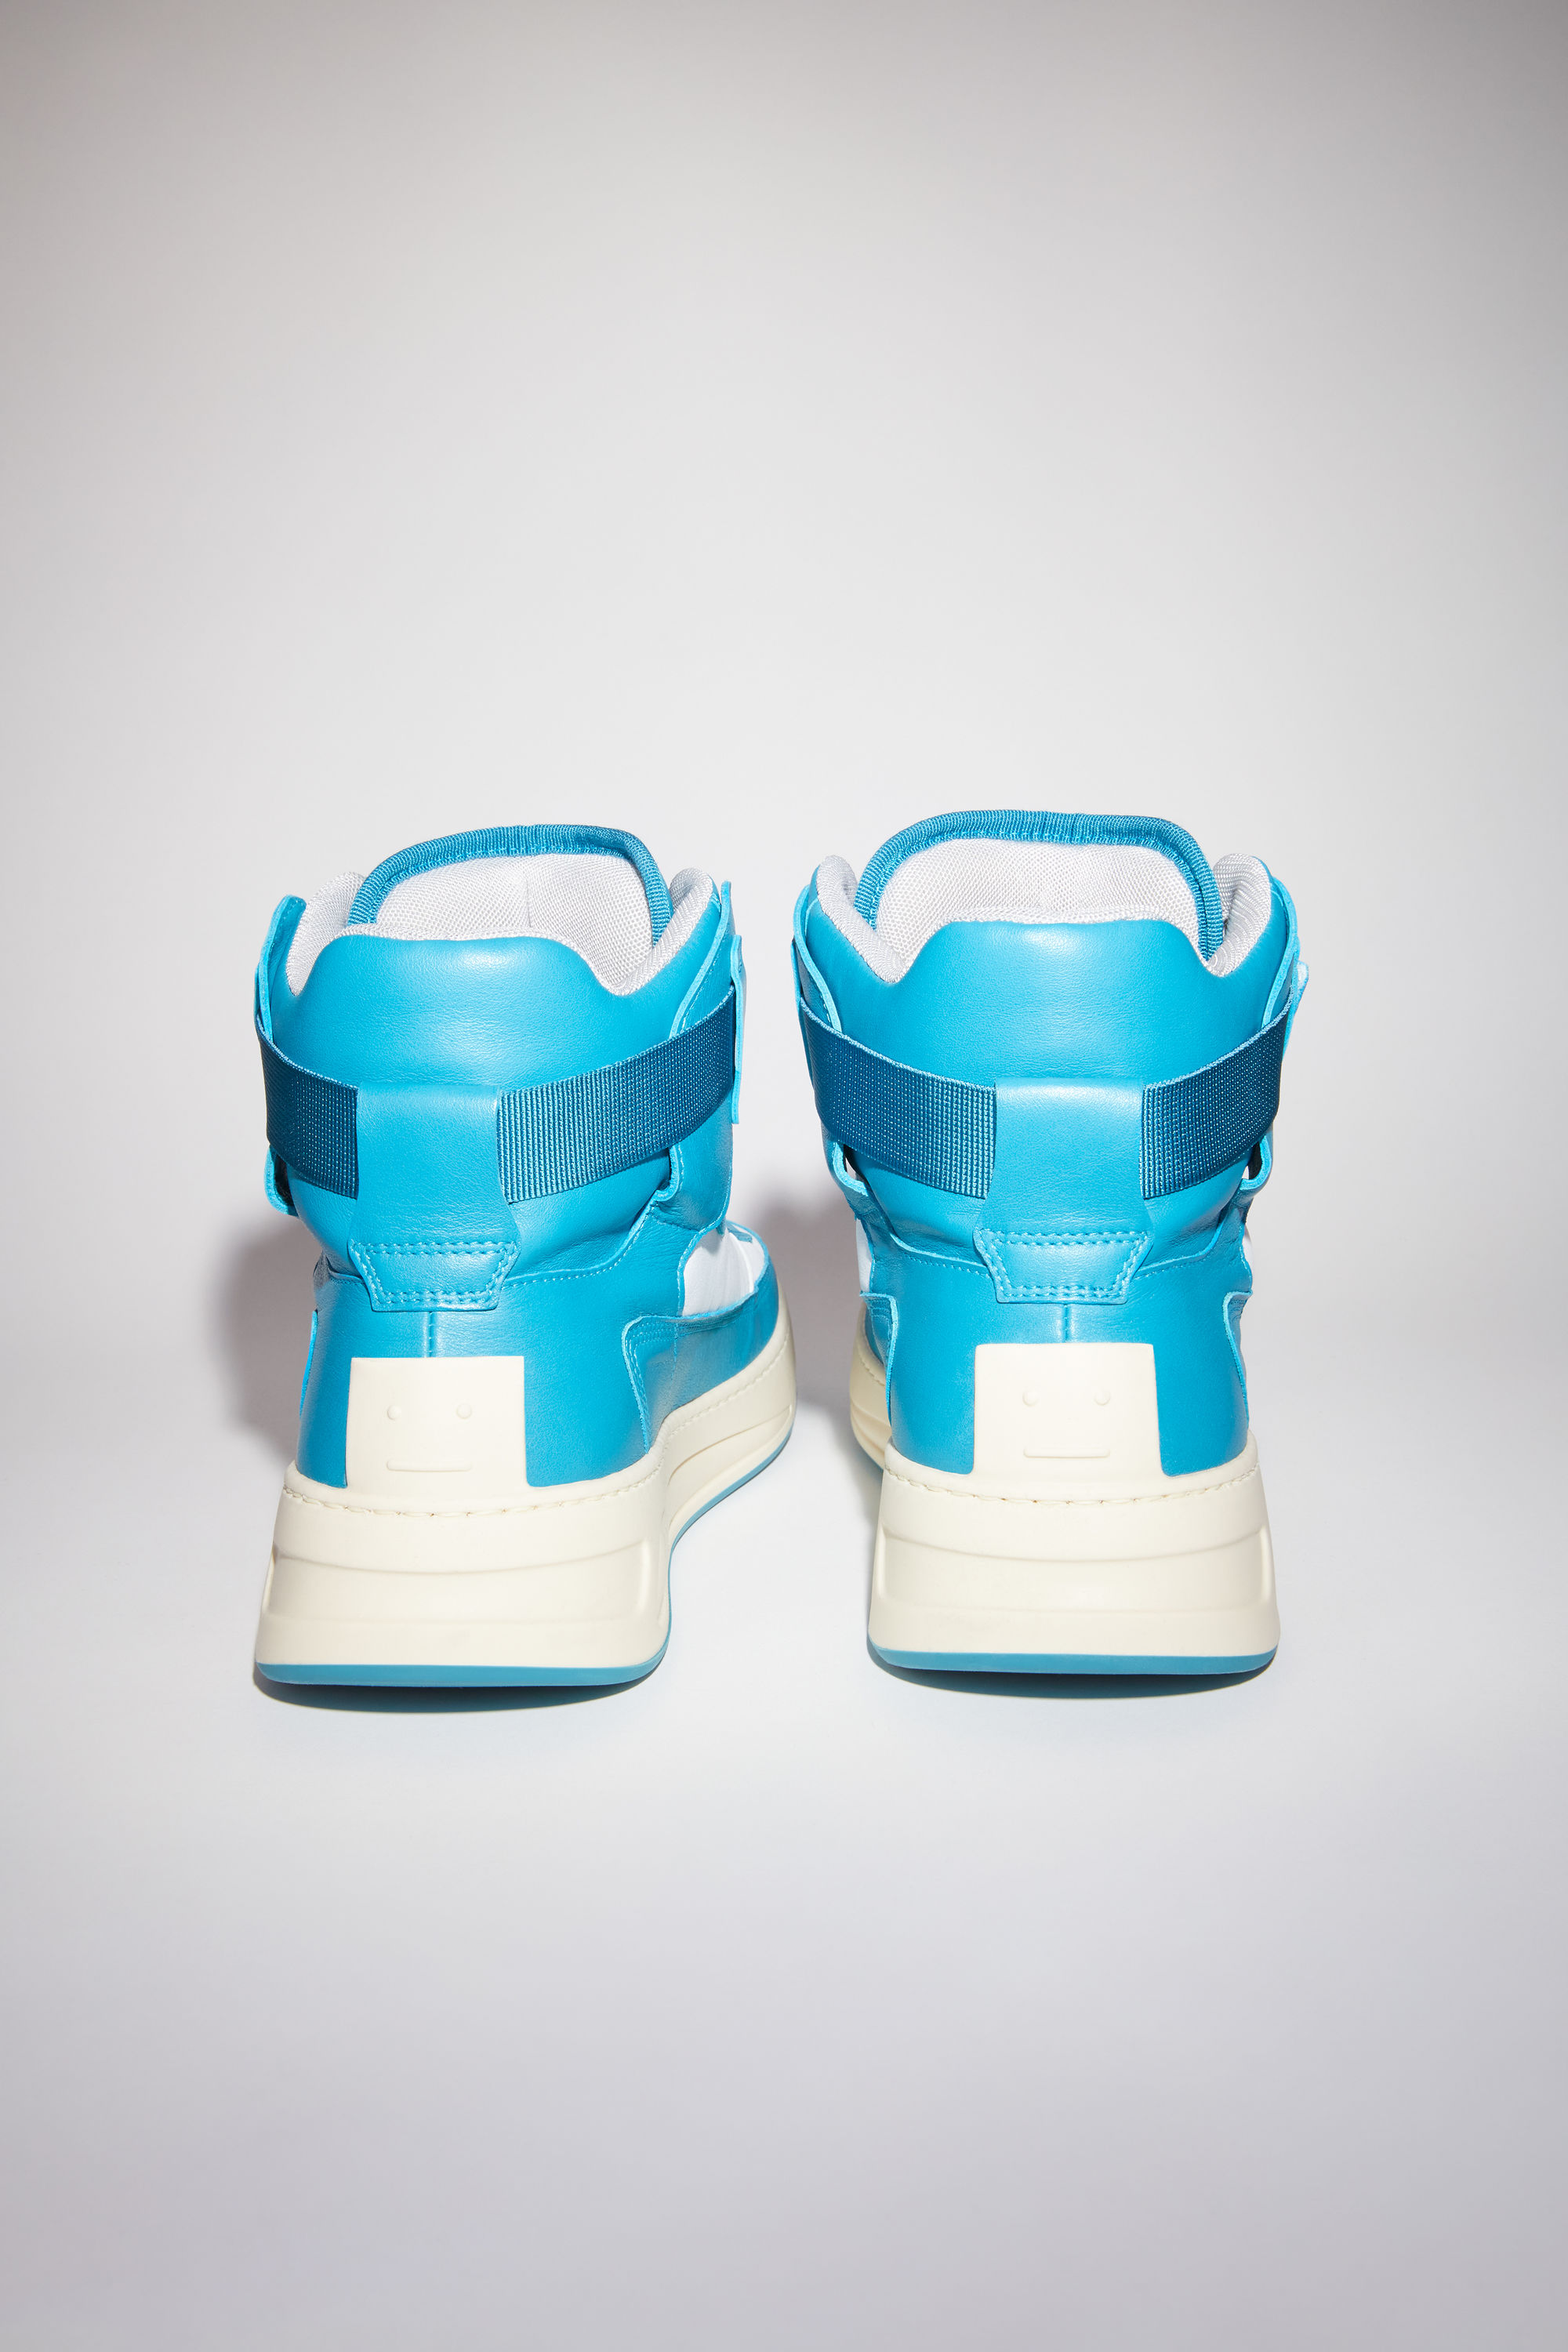 Acne Studios turquoise/white/white lace-up high top sneakers are made of calf leather with a face motif on the back sole. 003